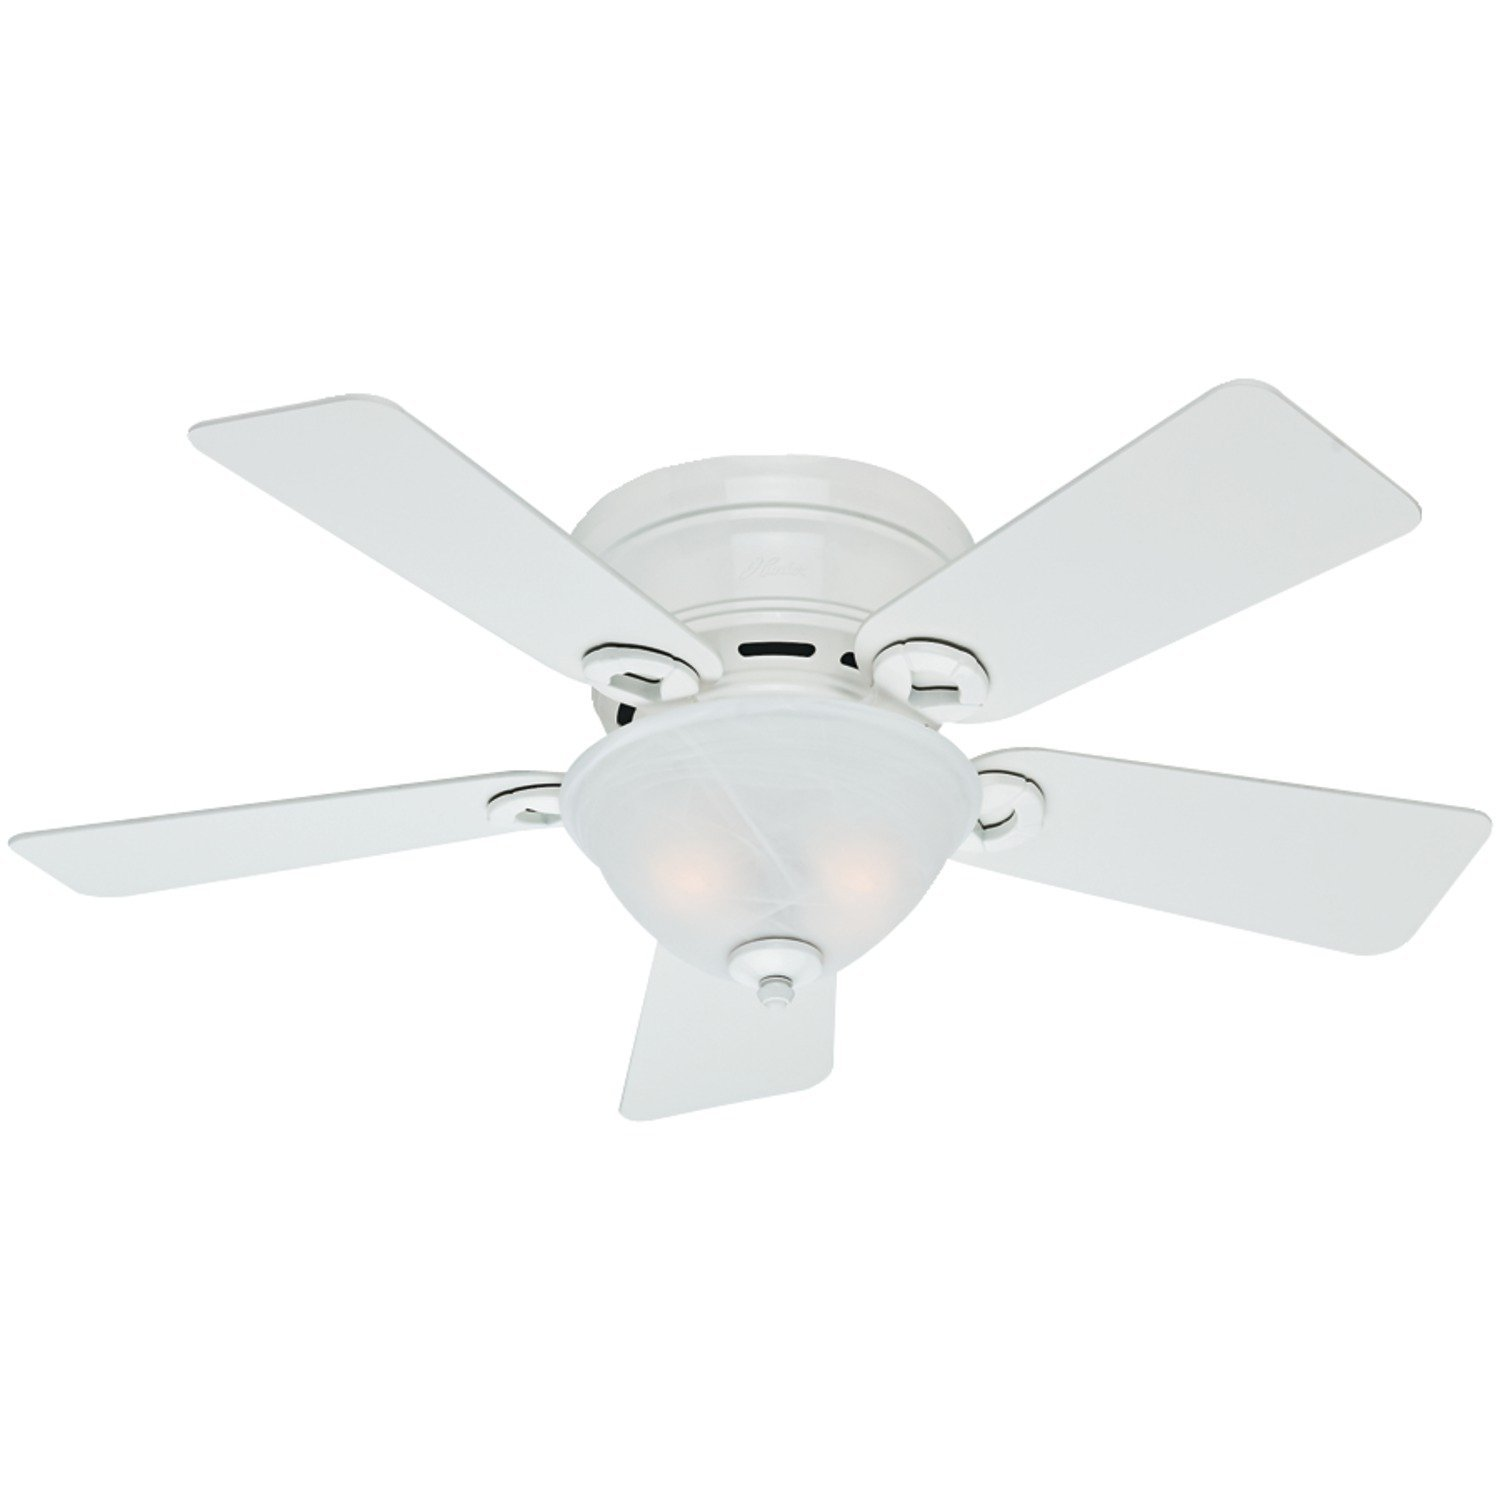 Hunter Fan Company 51022 Conroy 42-Inch Snow White Ceiling Fan with Five Snow White Blades and a Light Kit